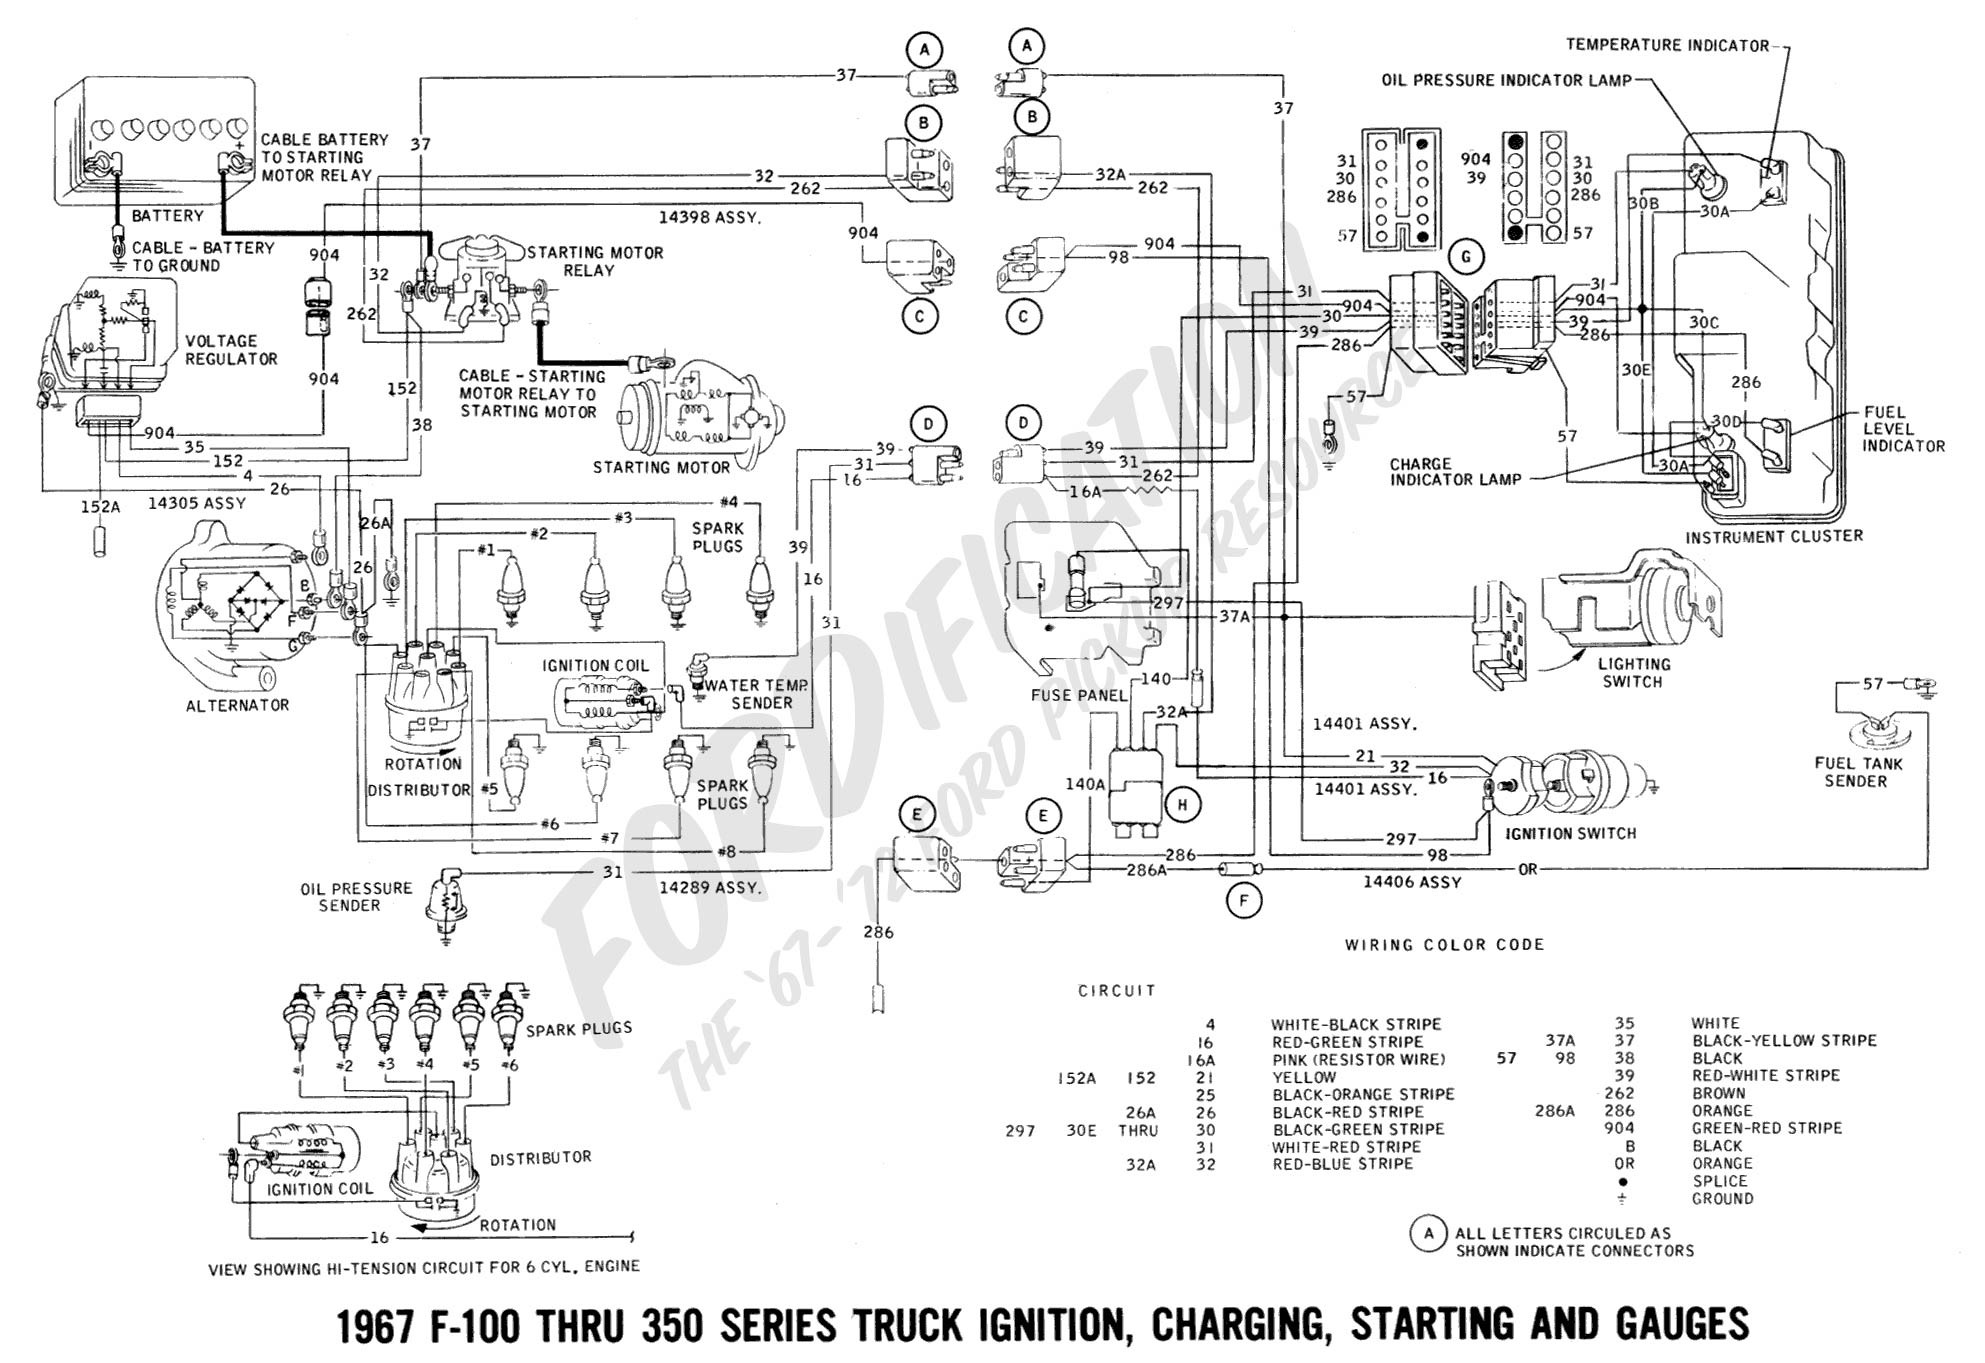 03 ford f150 wiring diagram building management system 2002 engine my